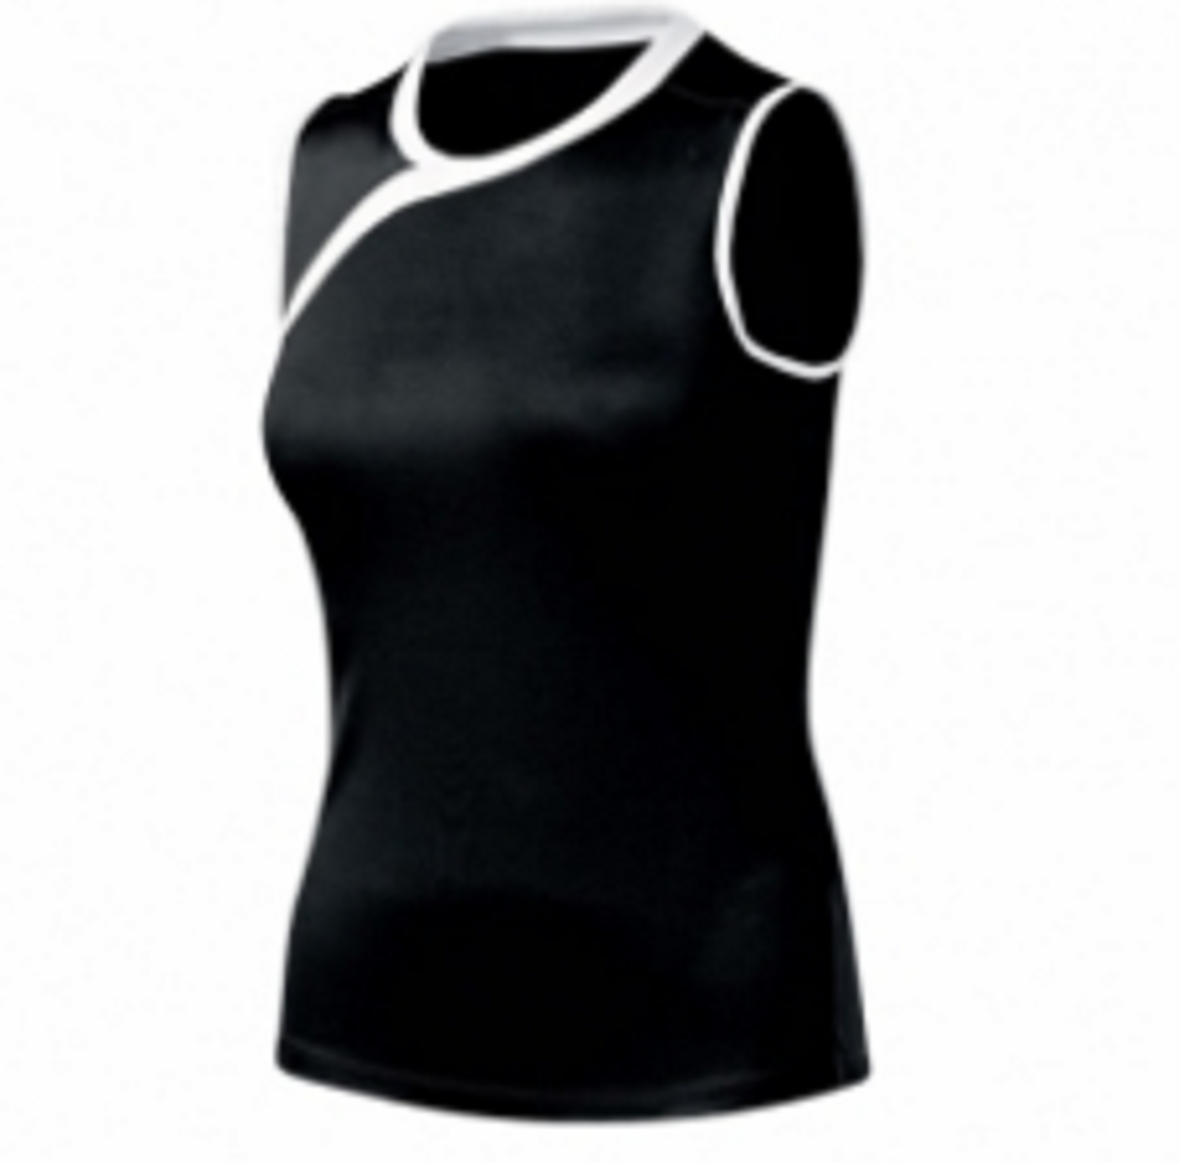 Volleyball Uniforms  Black Shirt Model No TSI­5802